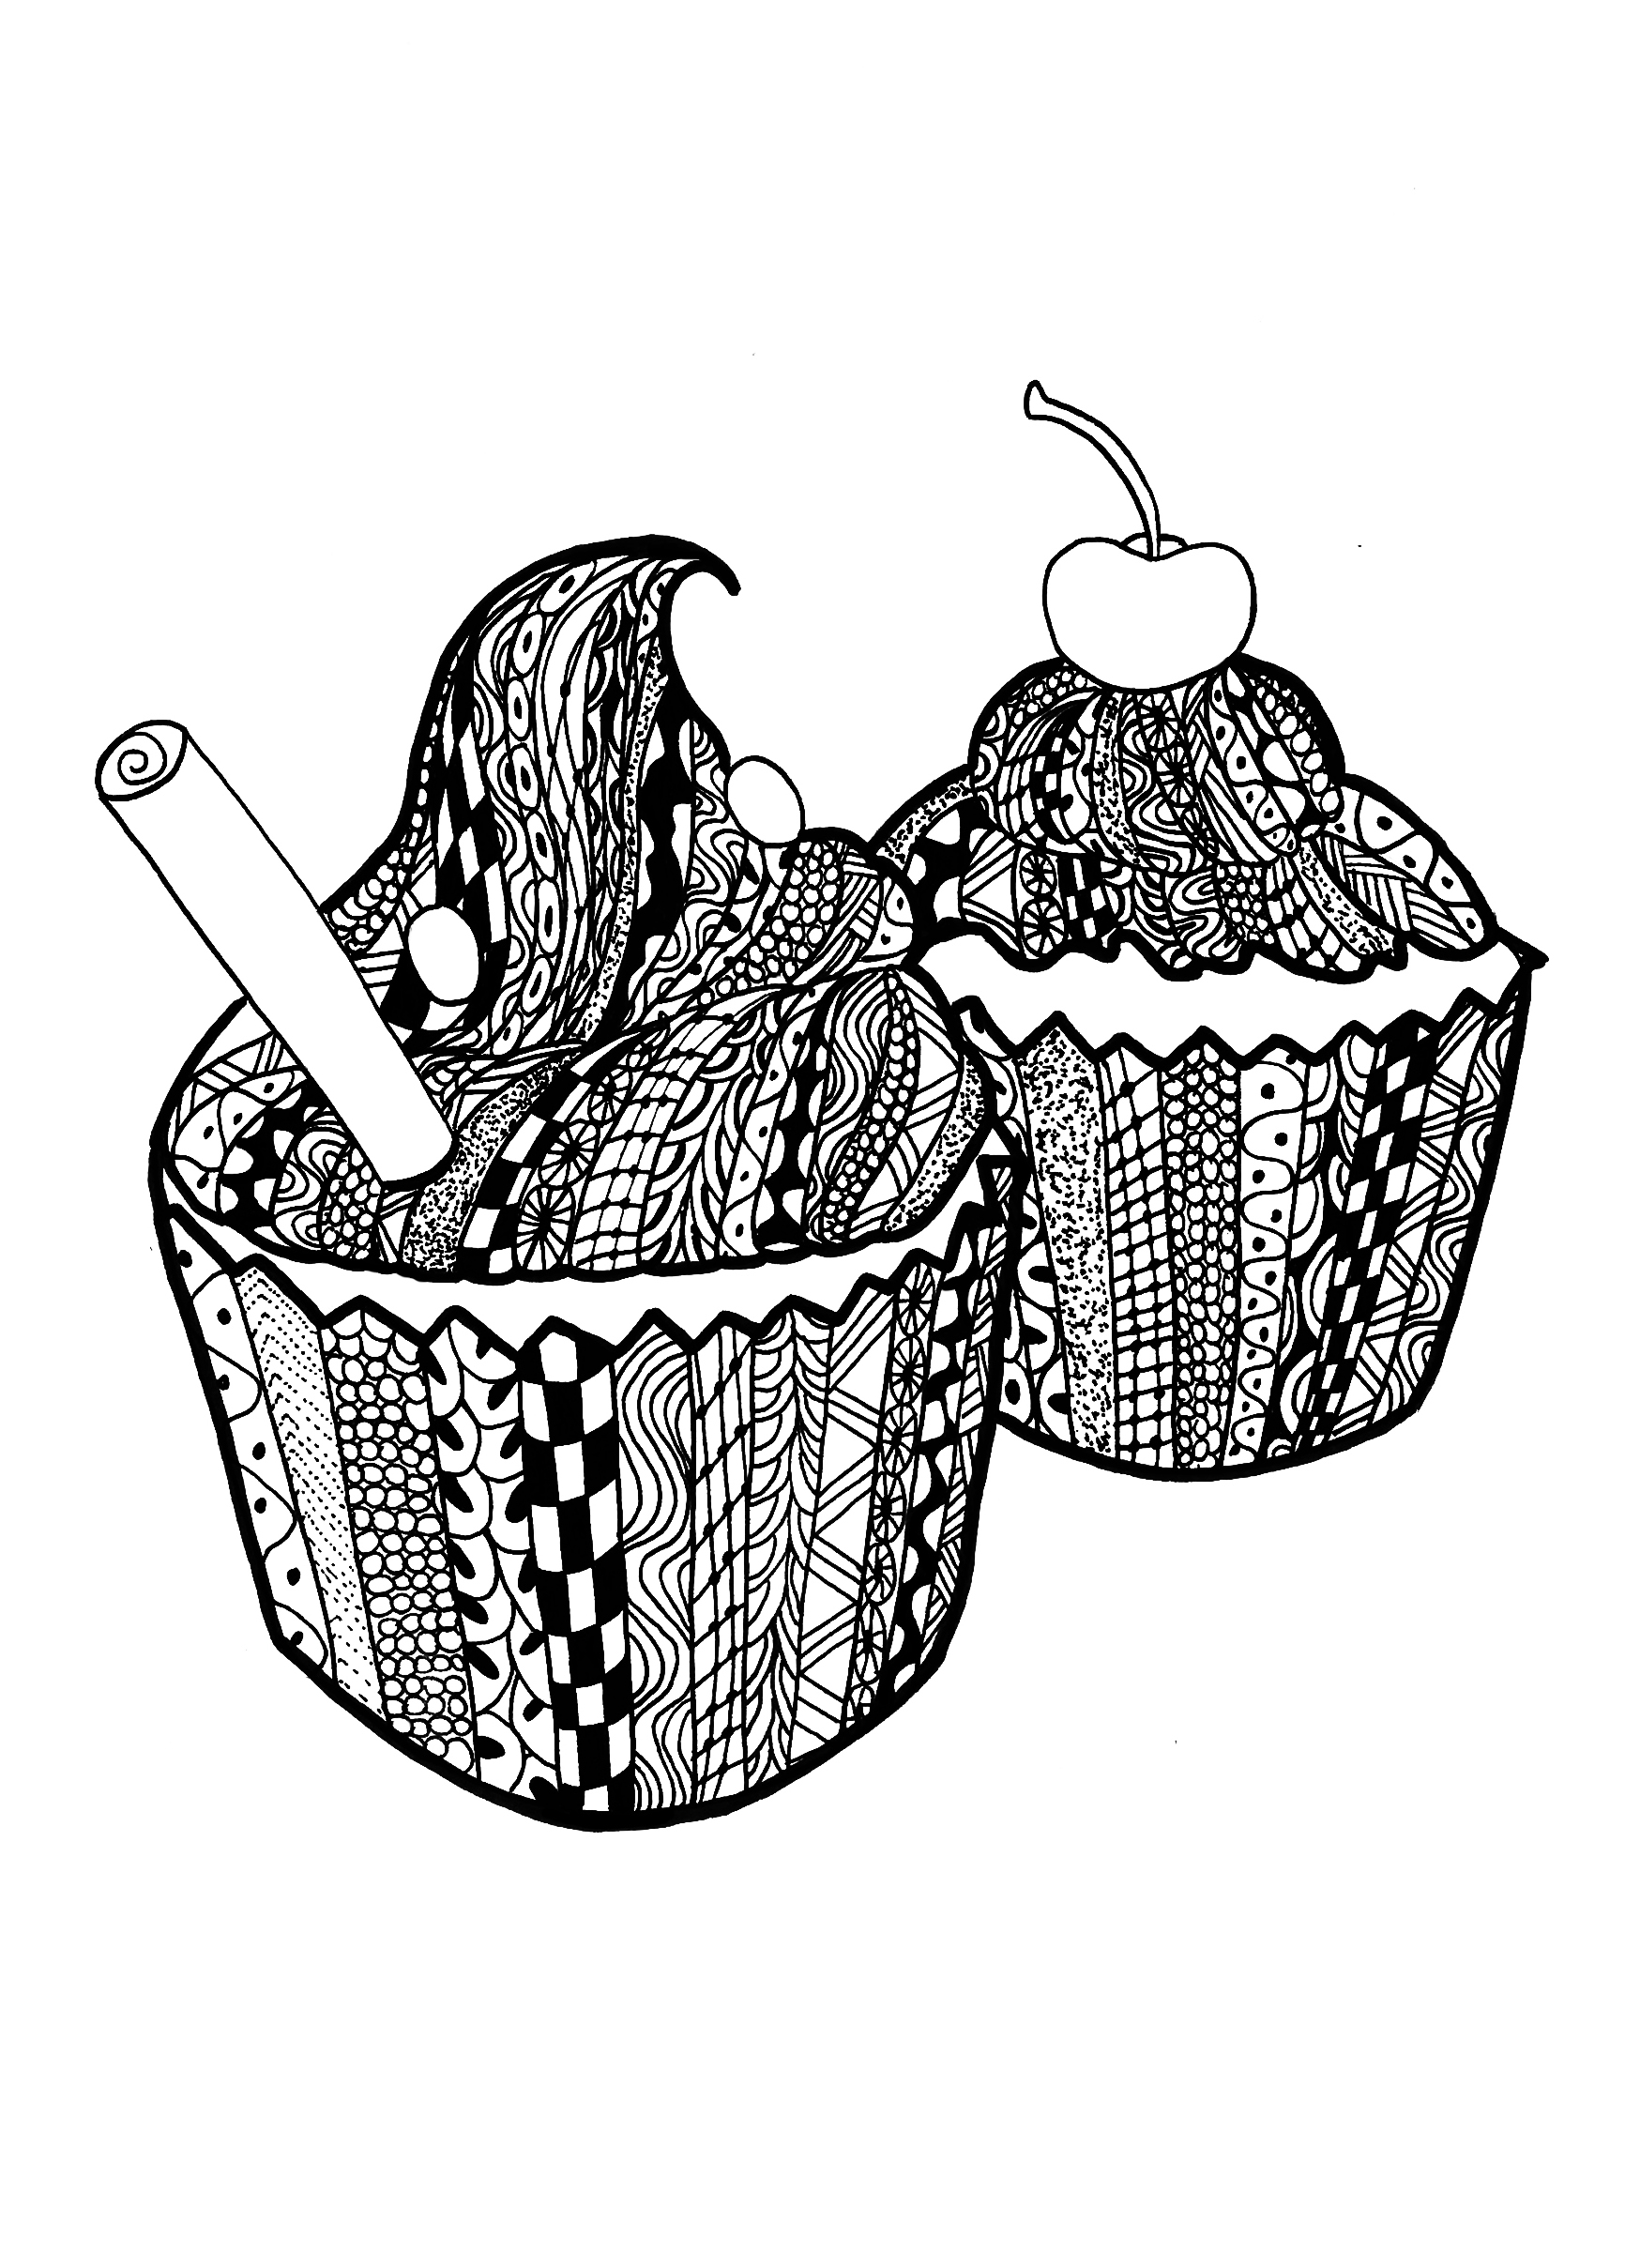 Printable coloring pages zentangle - Coloring Page Adults Zentangle Cupcakes Celine Free To Print